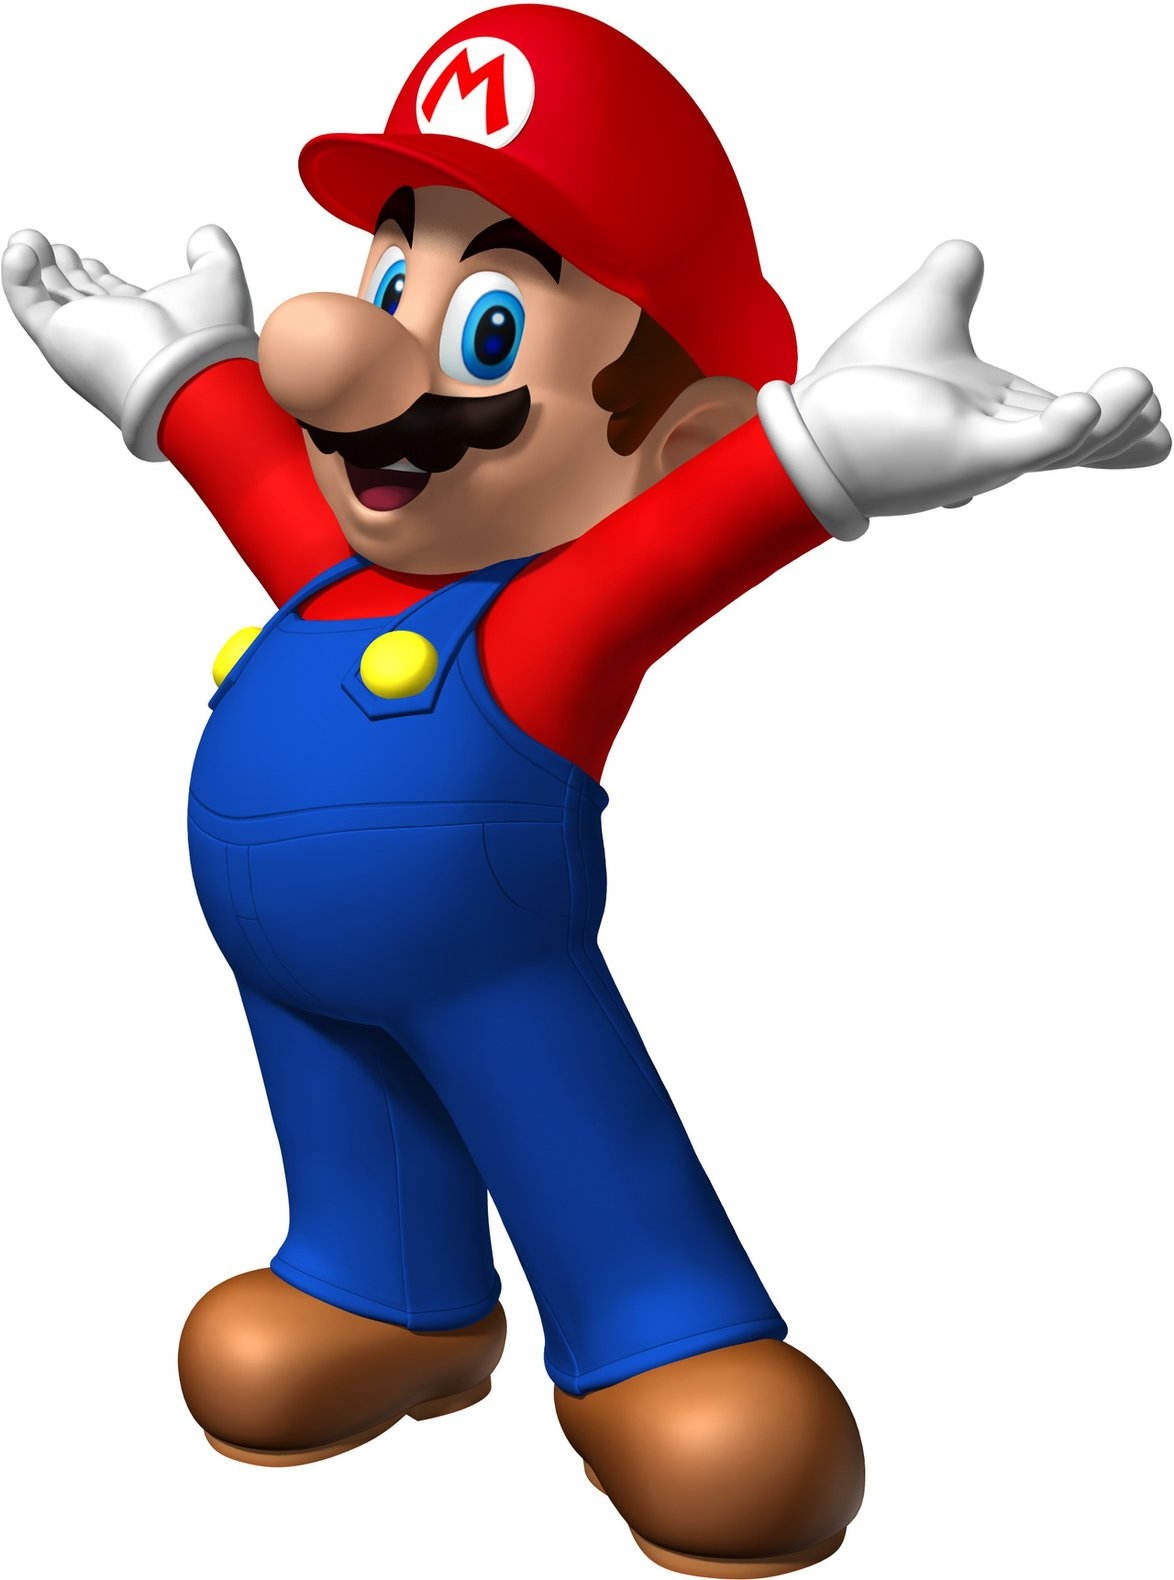 This is a picture of Soft Mario Brothers Images